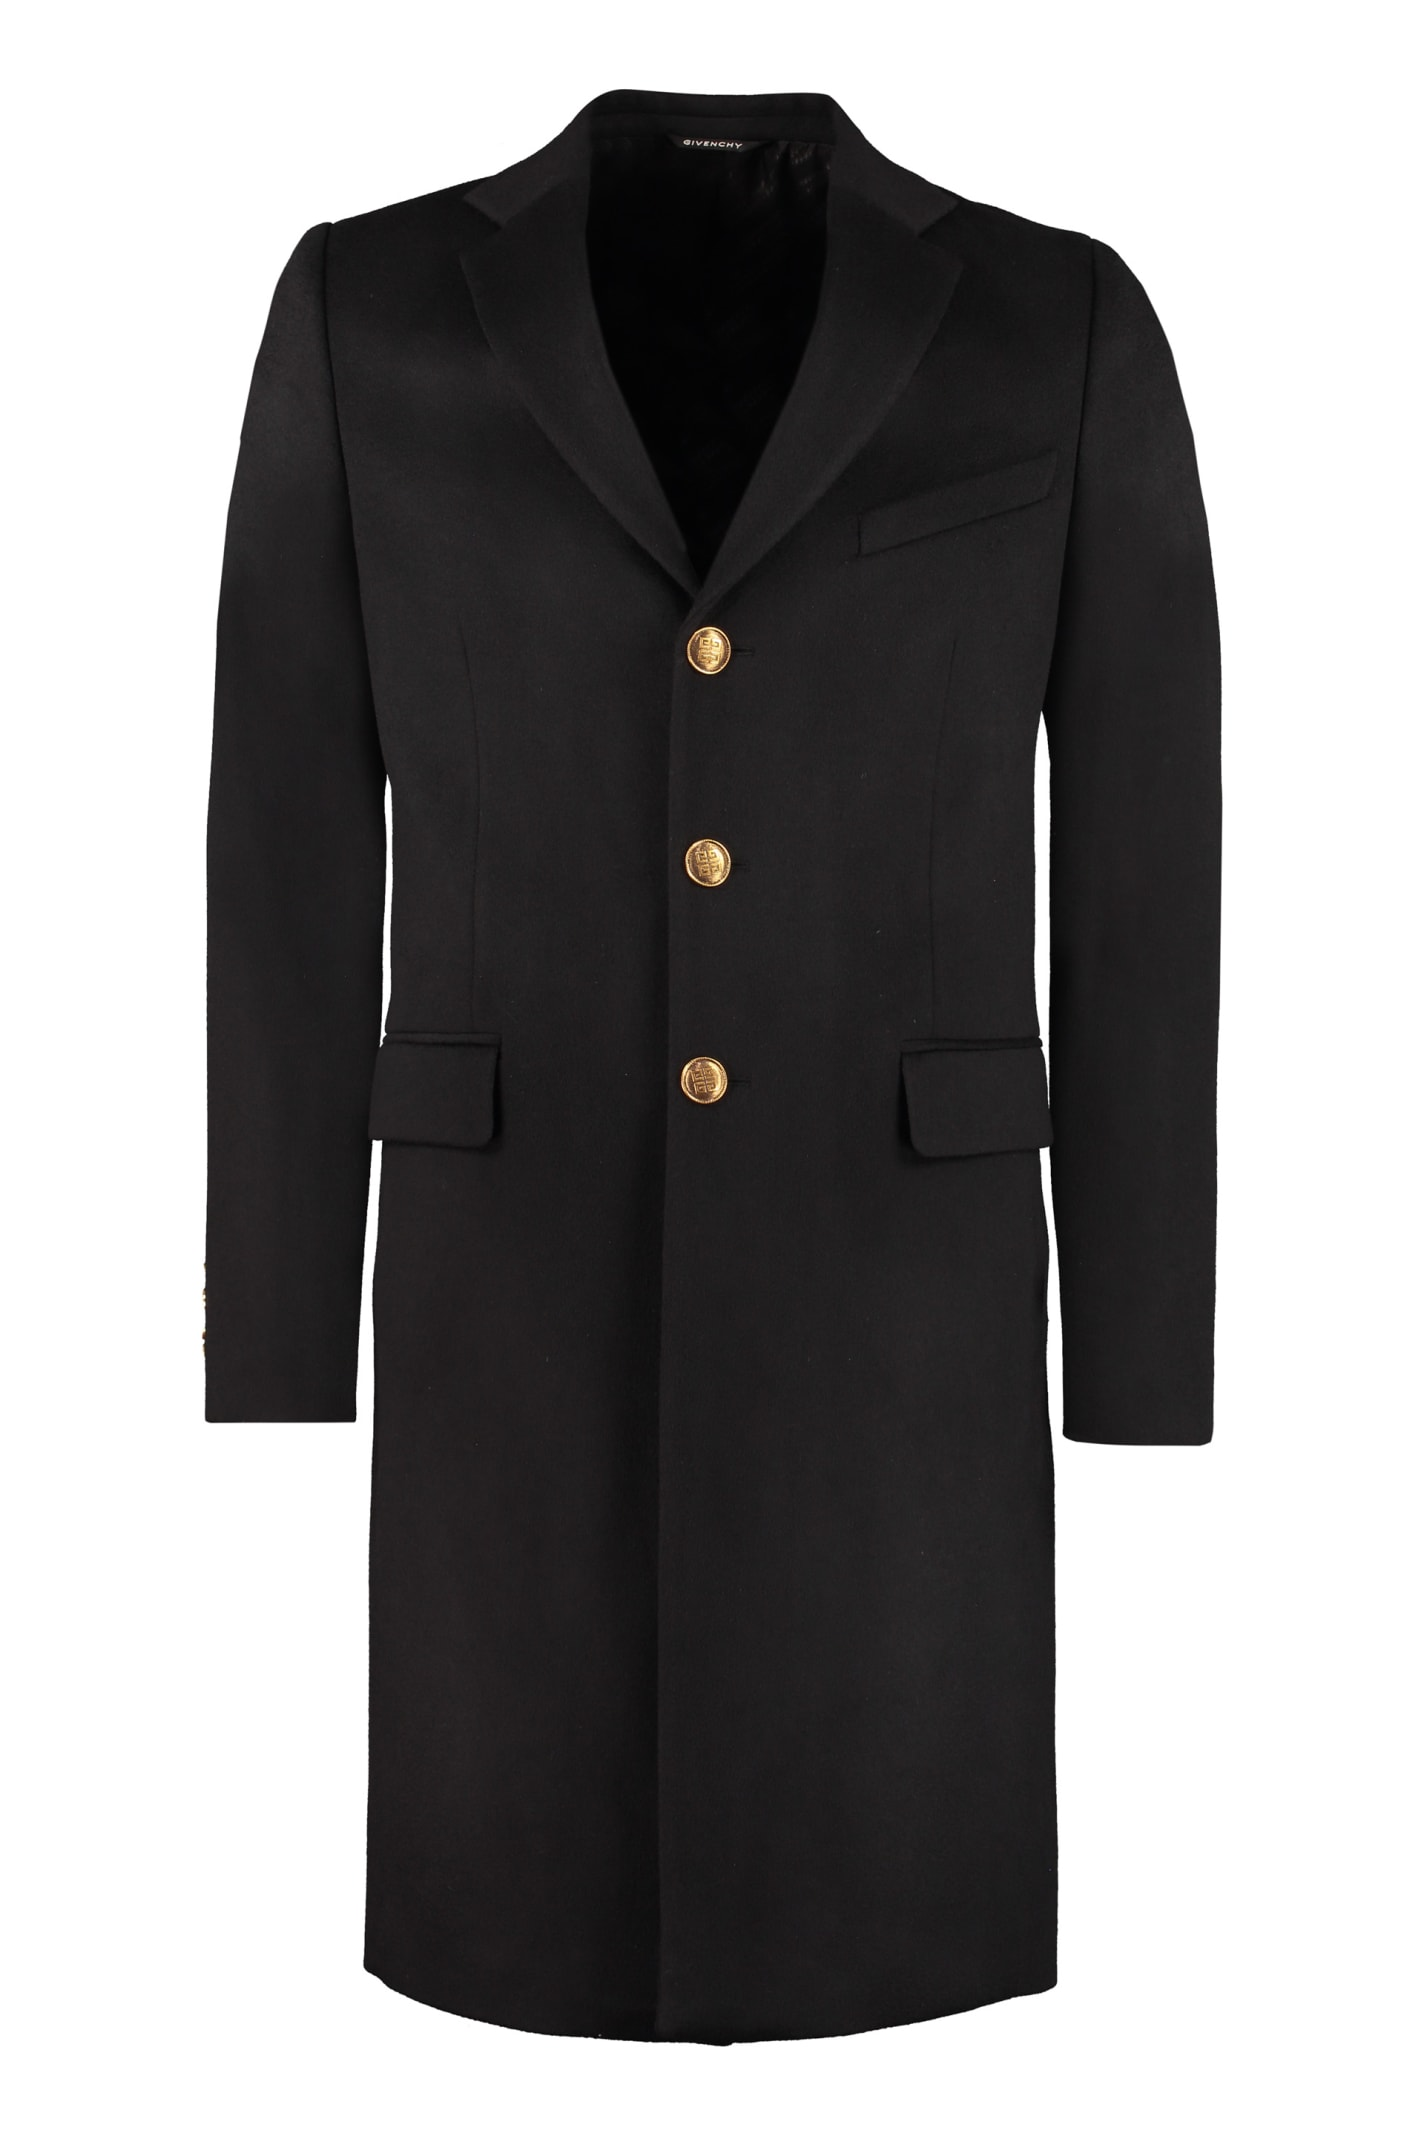 Givenchy Wool And Cashmere Coat